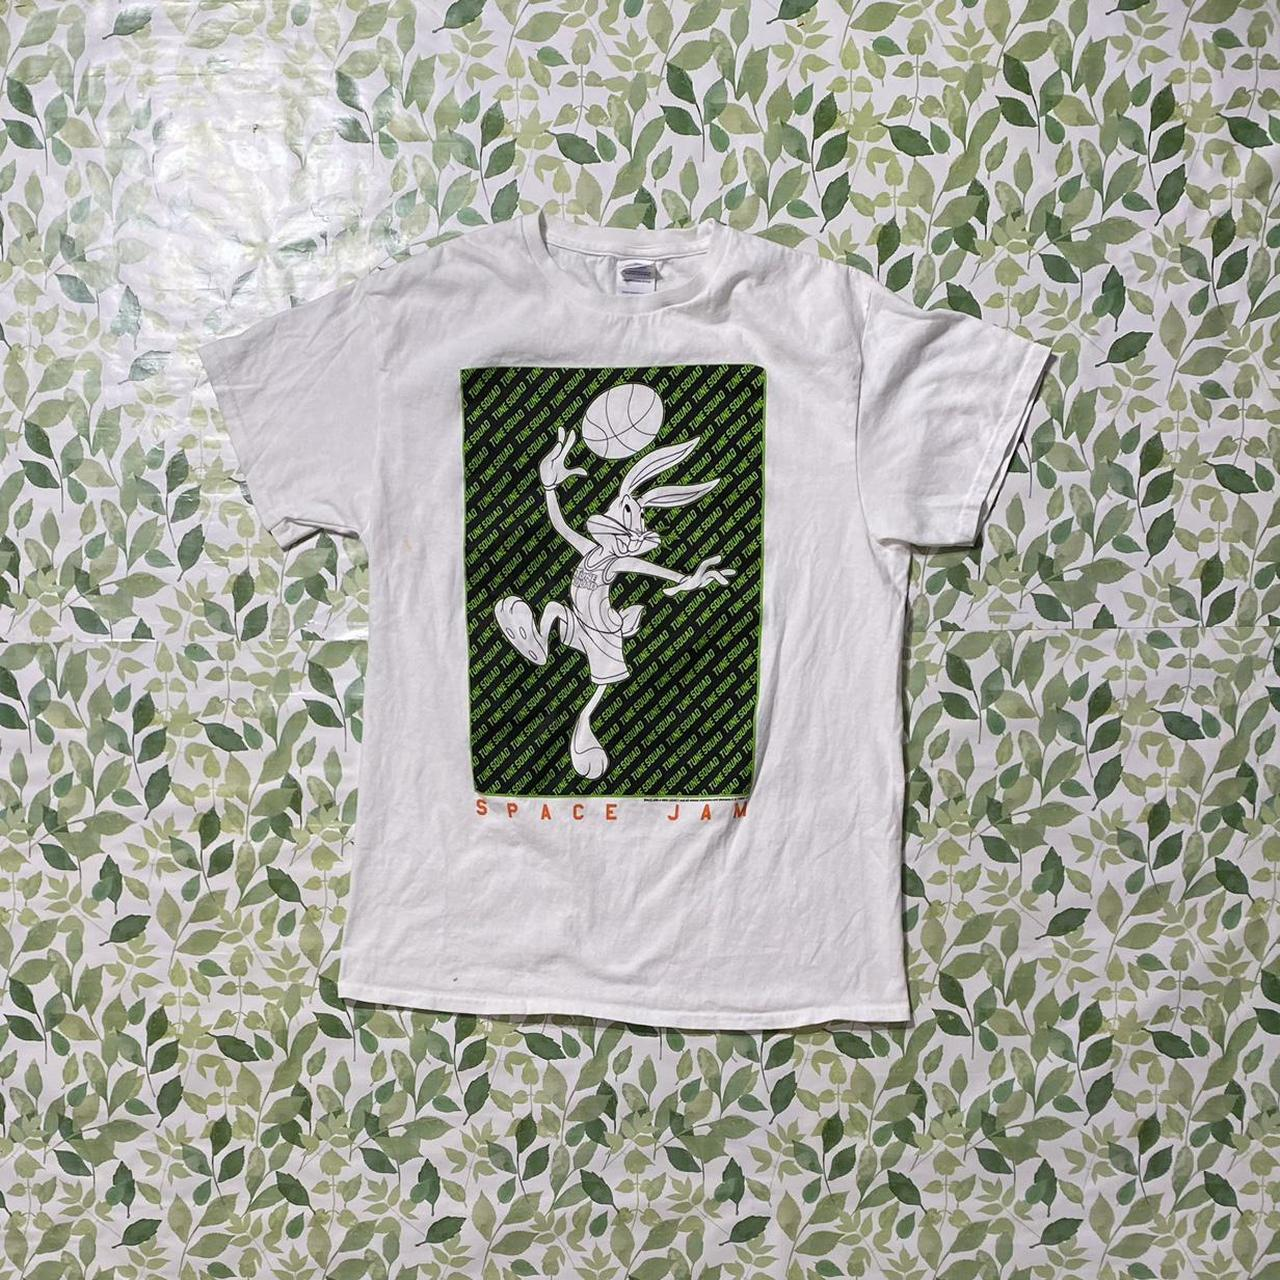 Product Image 1 - Vintage Y2K Space Jam Graphic